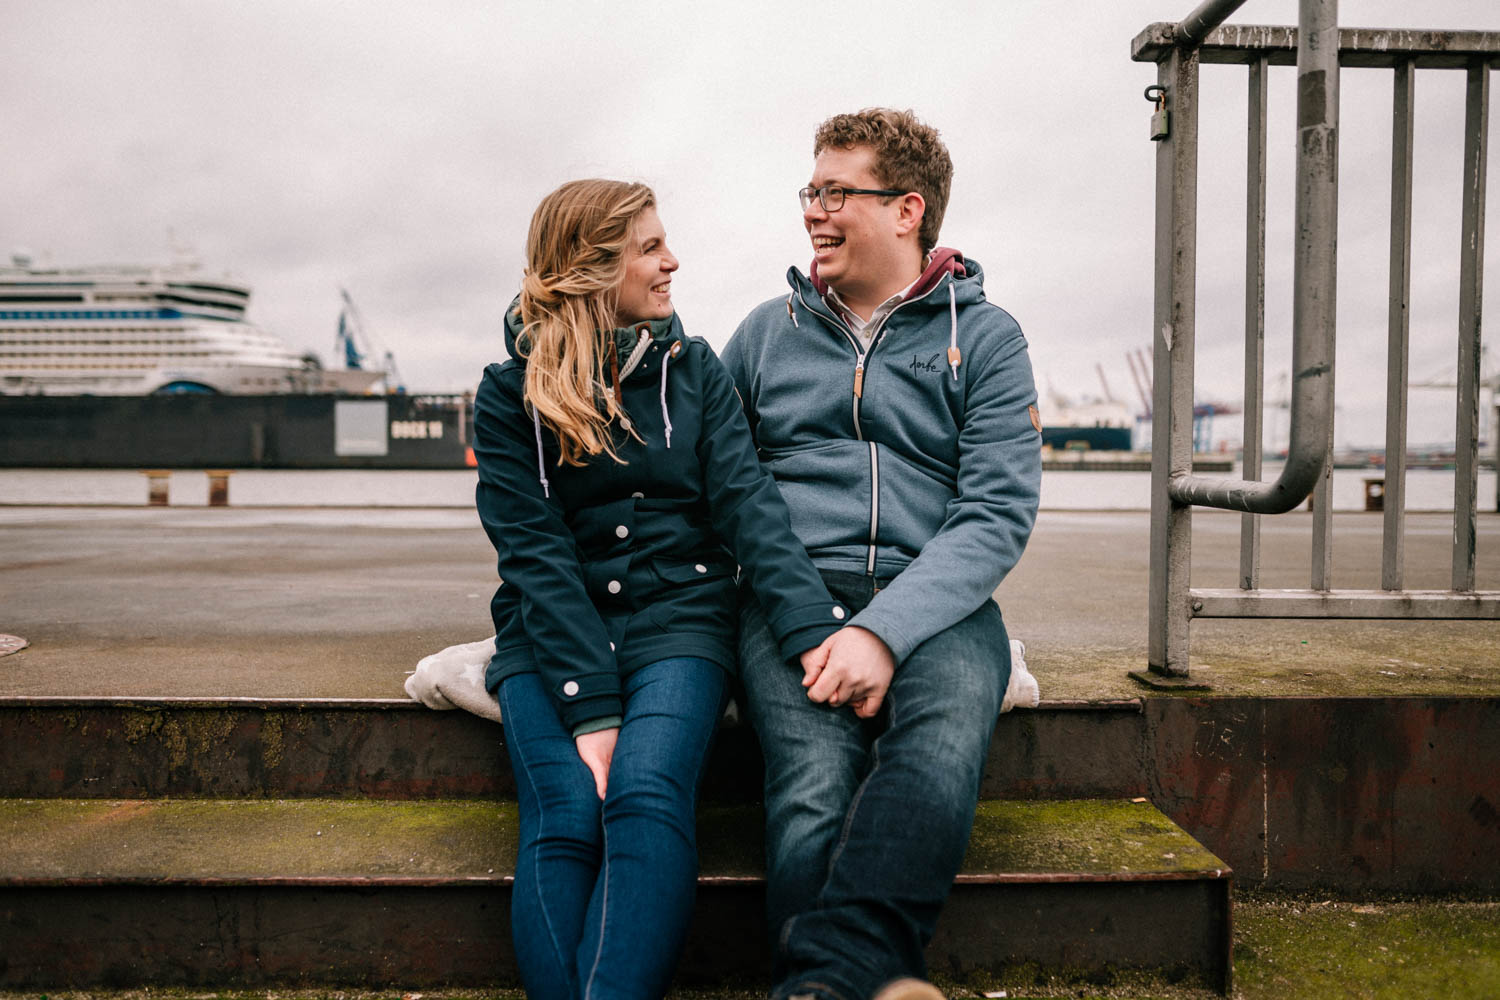 Engagementshooting, Hochzeitsfieber by Photo-Schomburg, Pärchenshoot, Hamburg, Elbe, Hamburger Hafen, Hochzeitsfotograf, Wedding, Coupleshoot-12